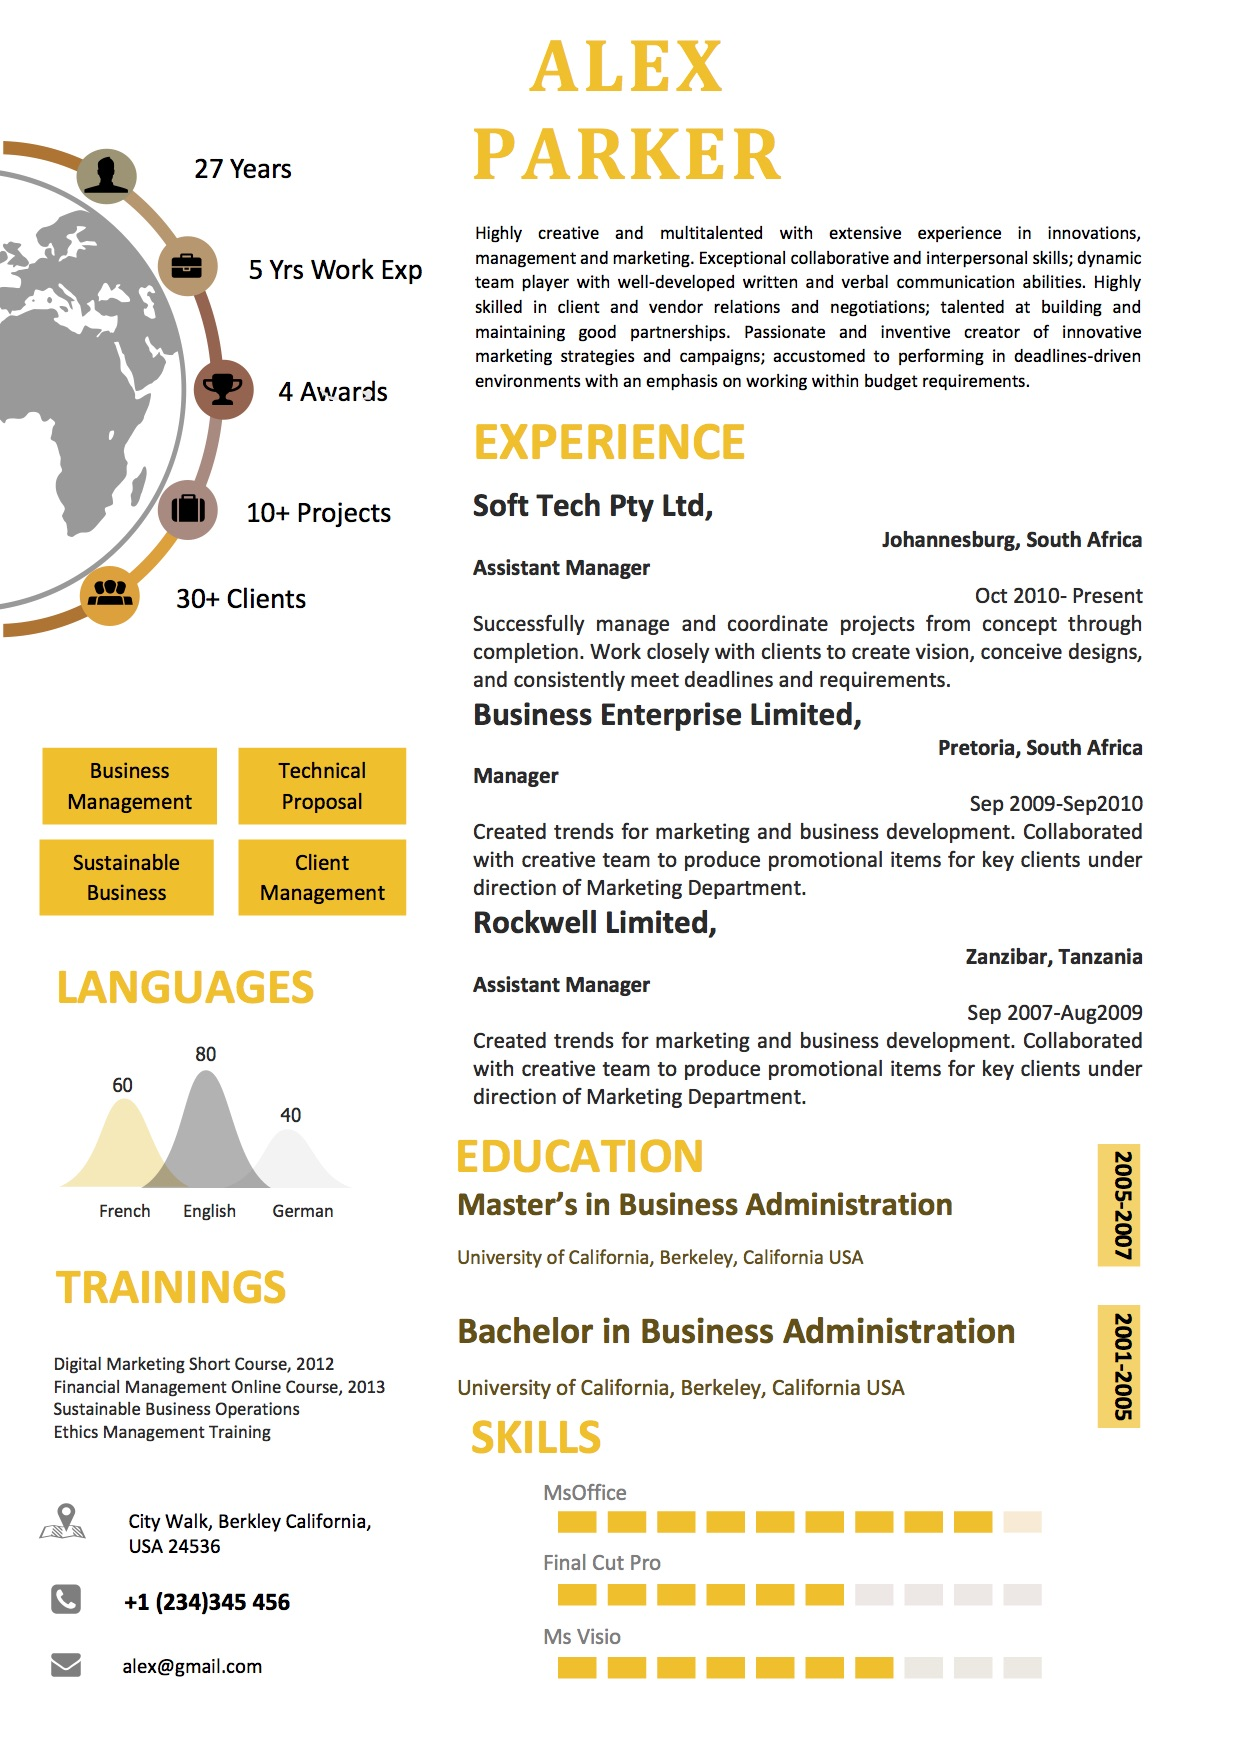 MS Word Resume Format With Orange Color And Map